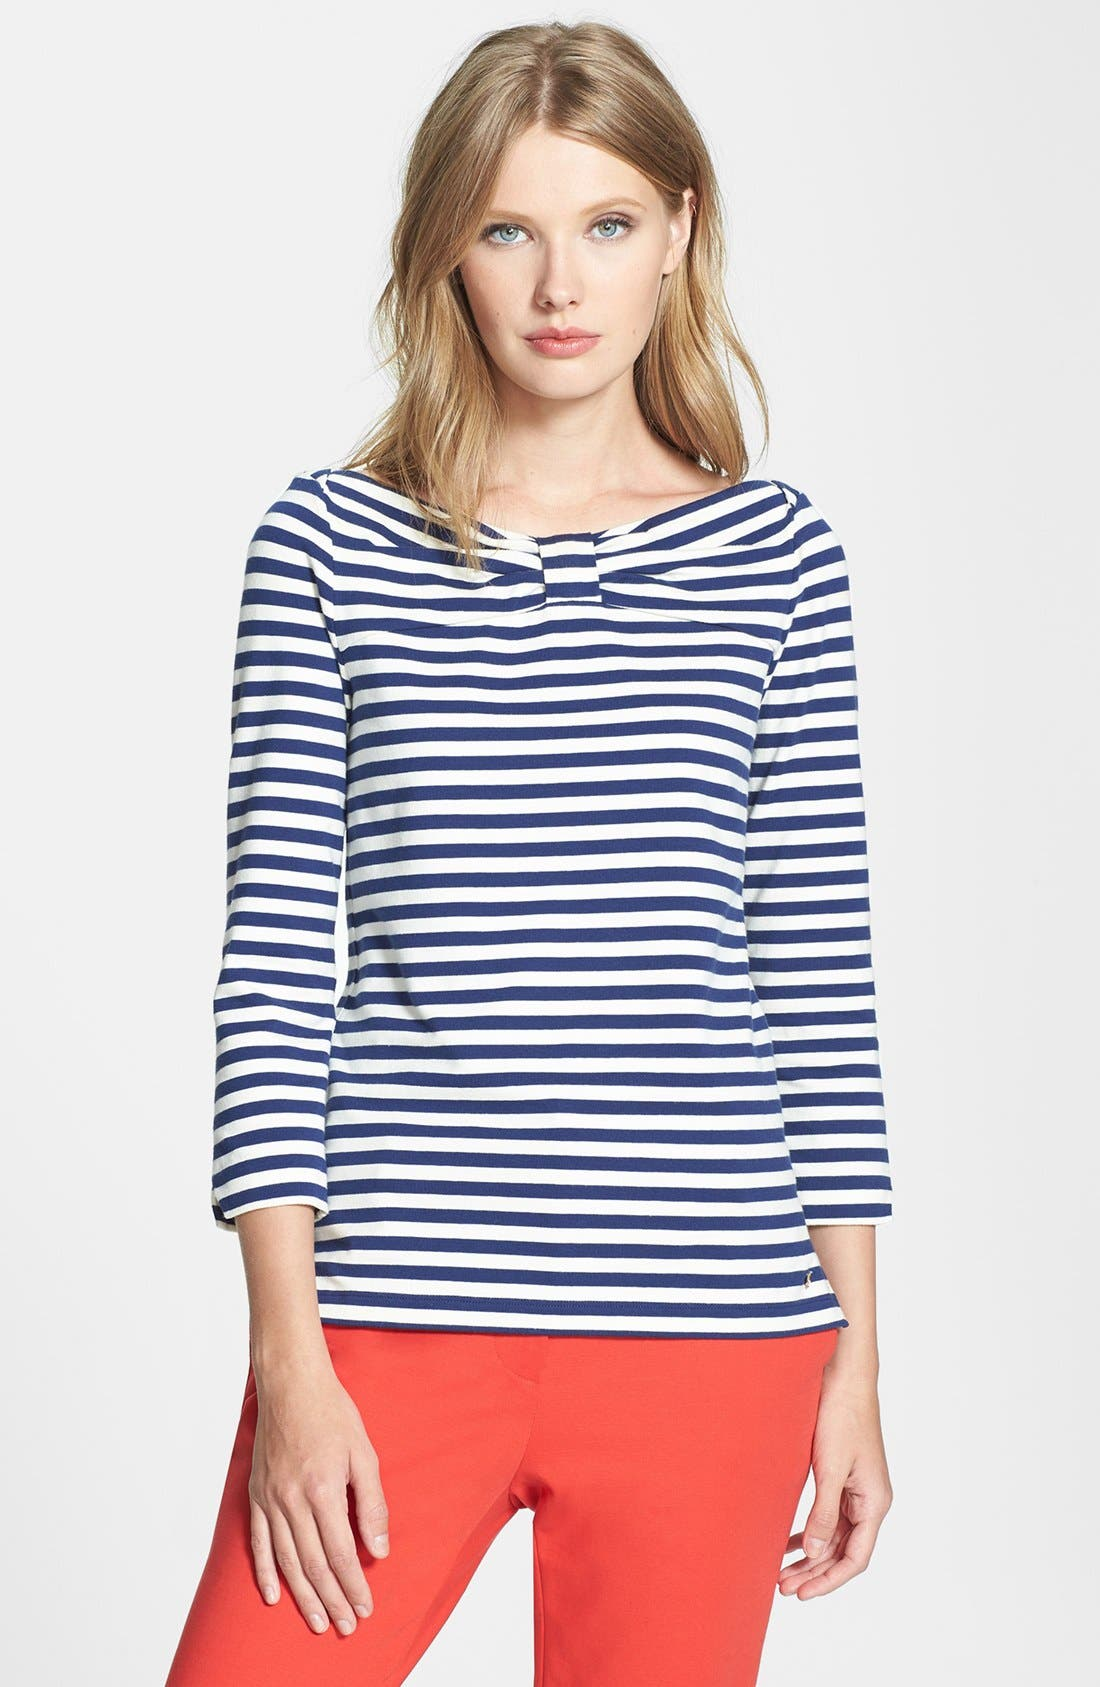 Alternate Image 1 Selected - kate spade new york 'wheaton' stretch cotton top